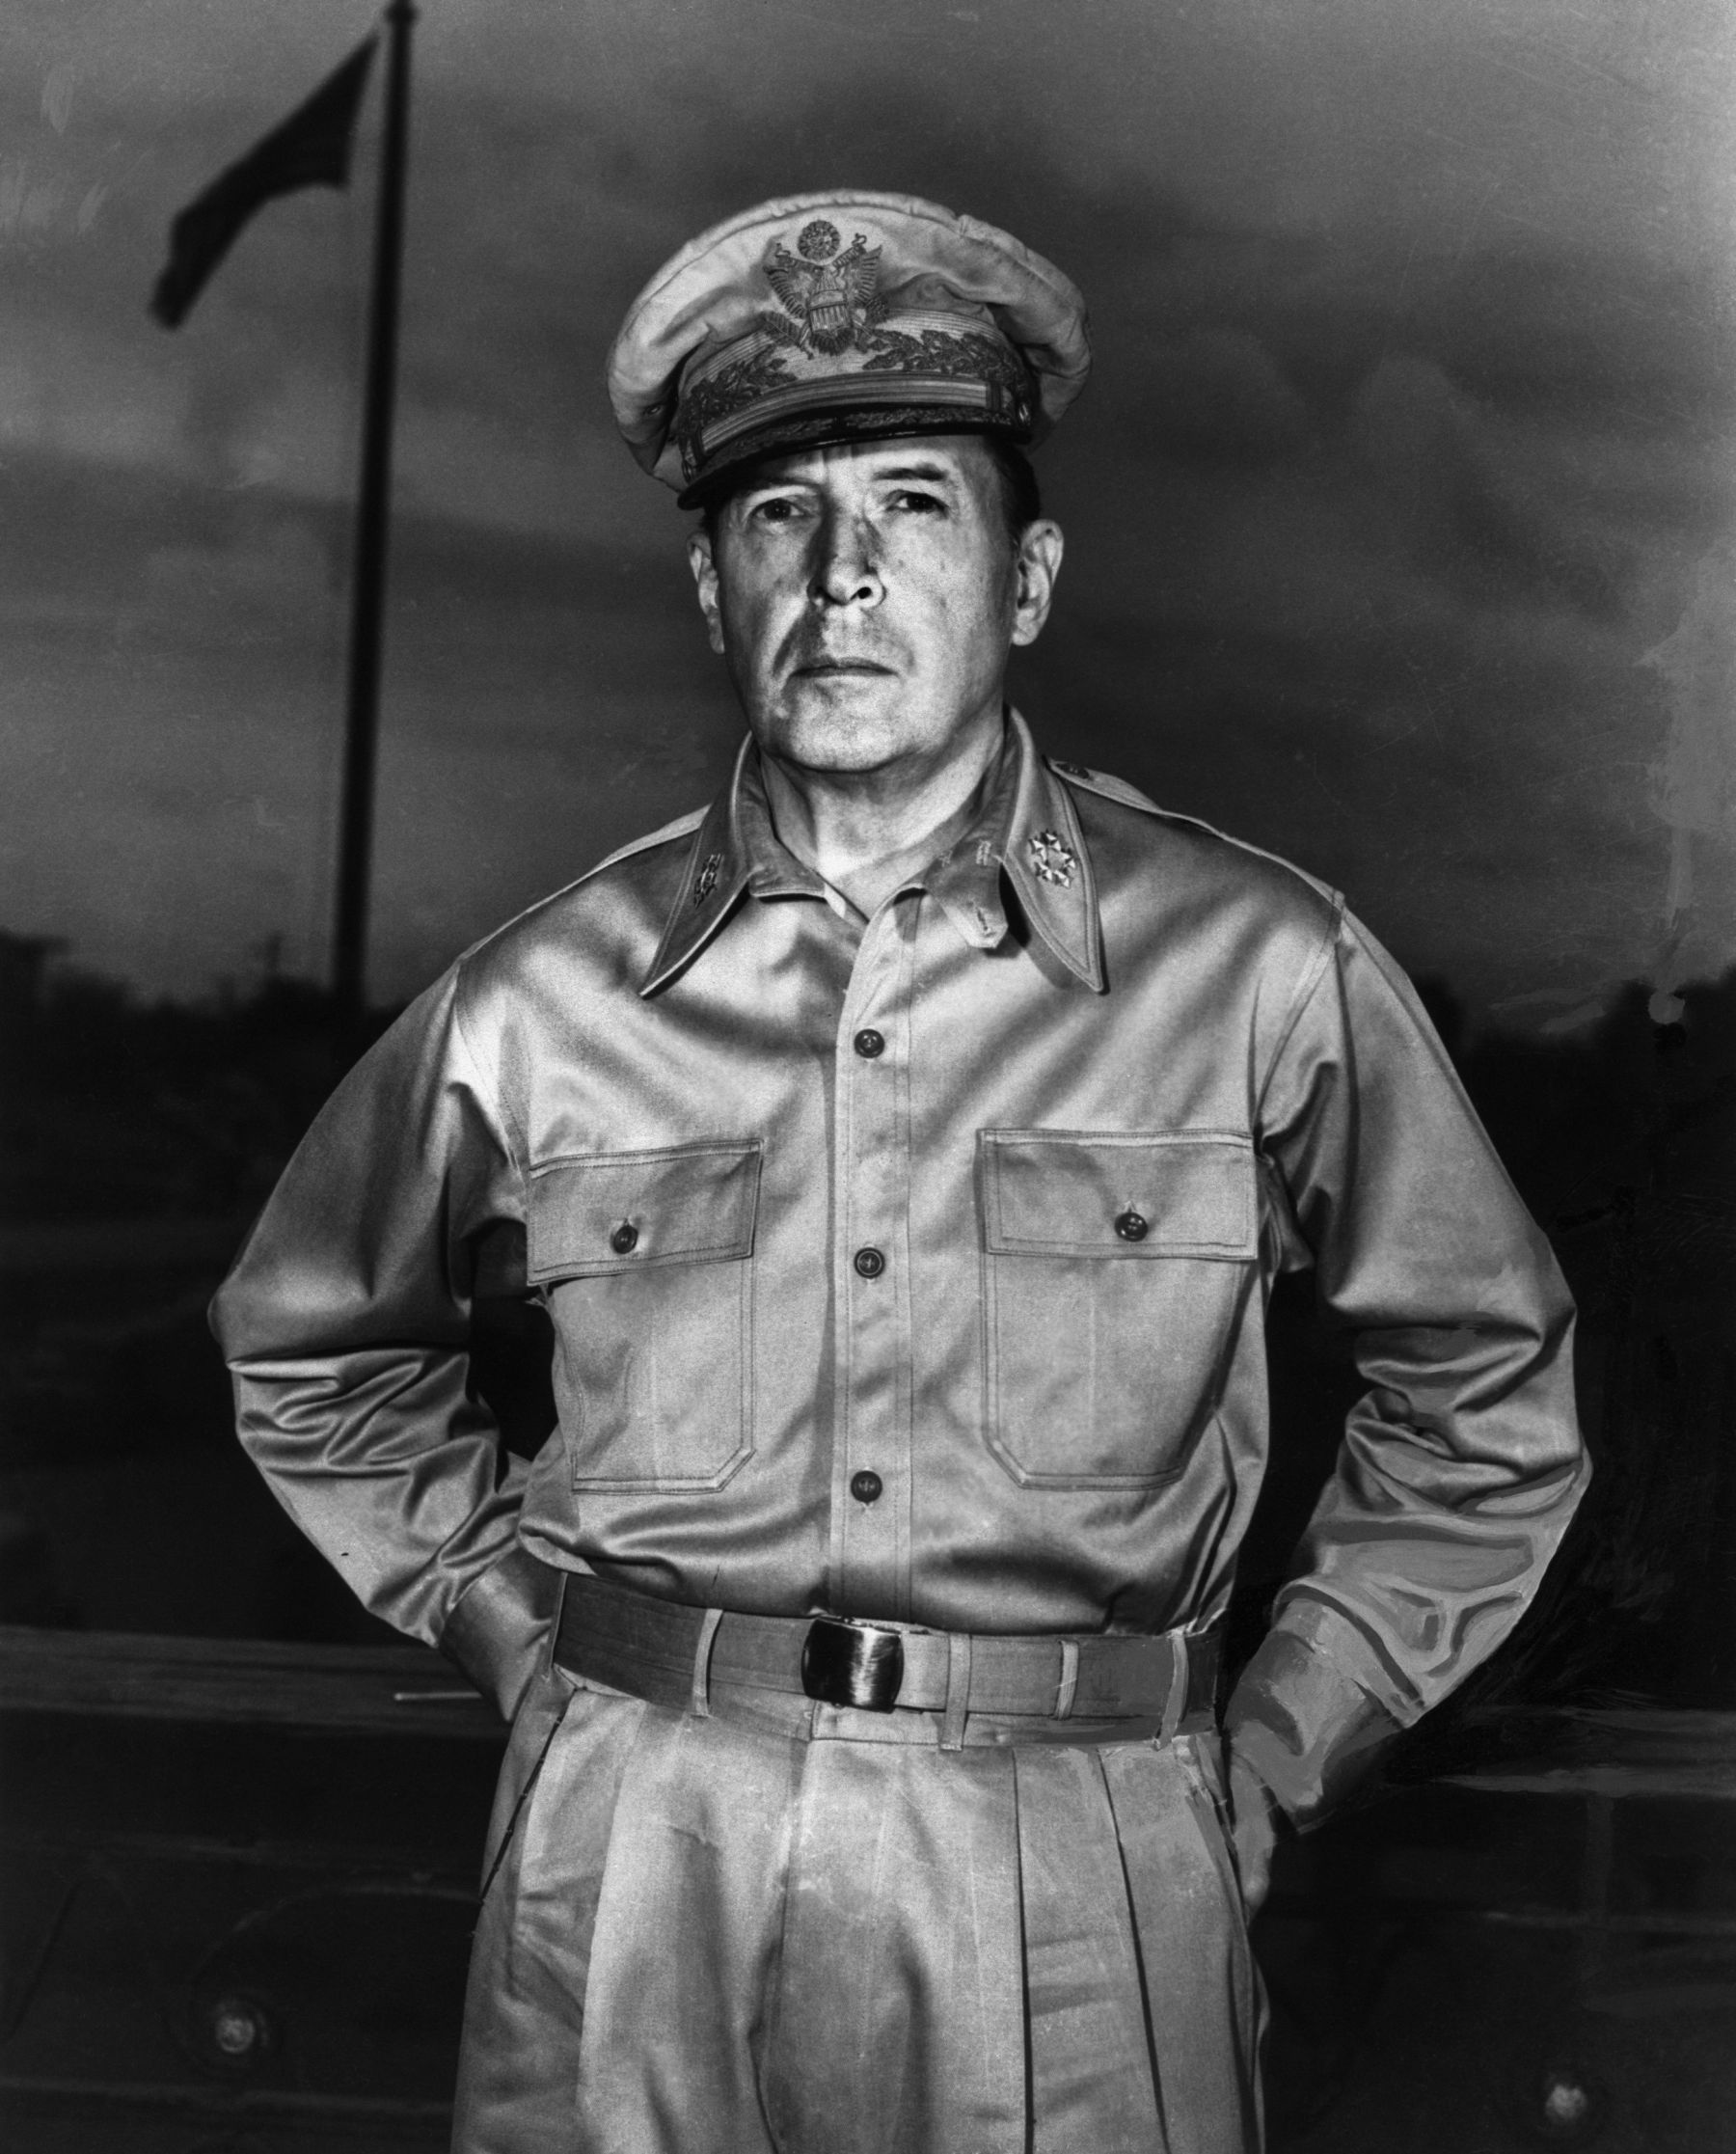 douglas mcarthur Douglas macarthur (26 january 1880 - 5 april 1964) was an american five-star general and field marshal of the philippine armyhe was chief of staff of the united states army during the 1930s and played a prominent role in the pacific theater during world war ii.